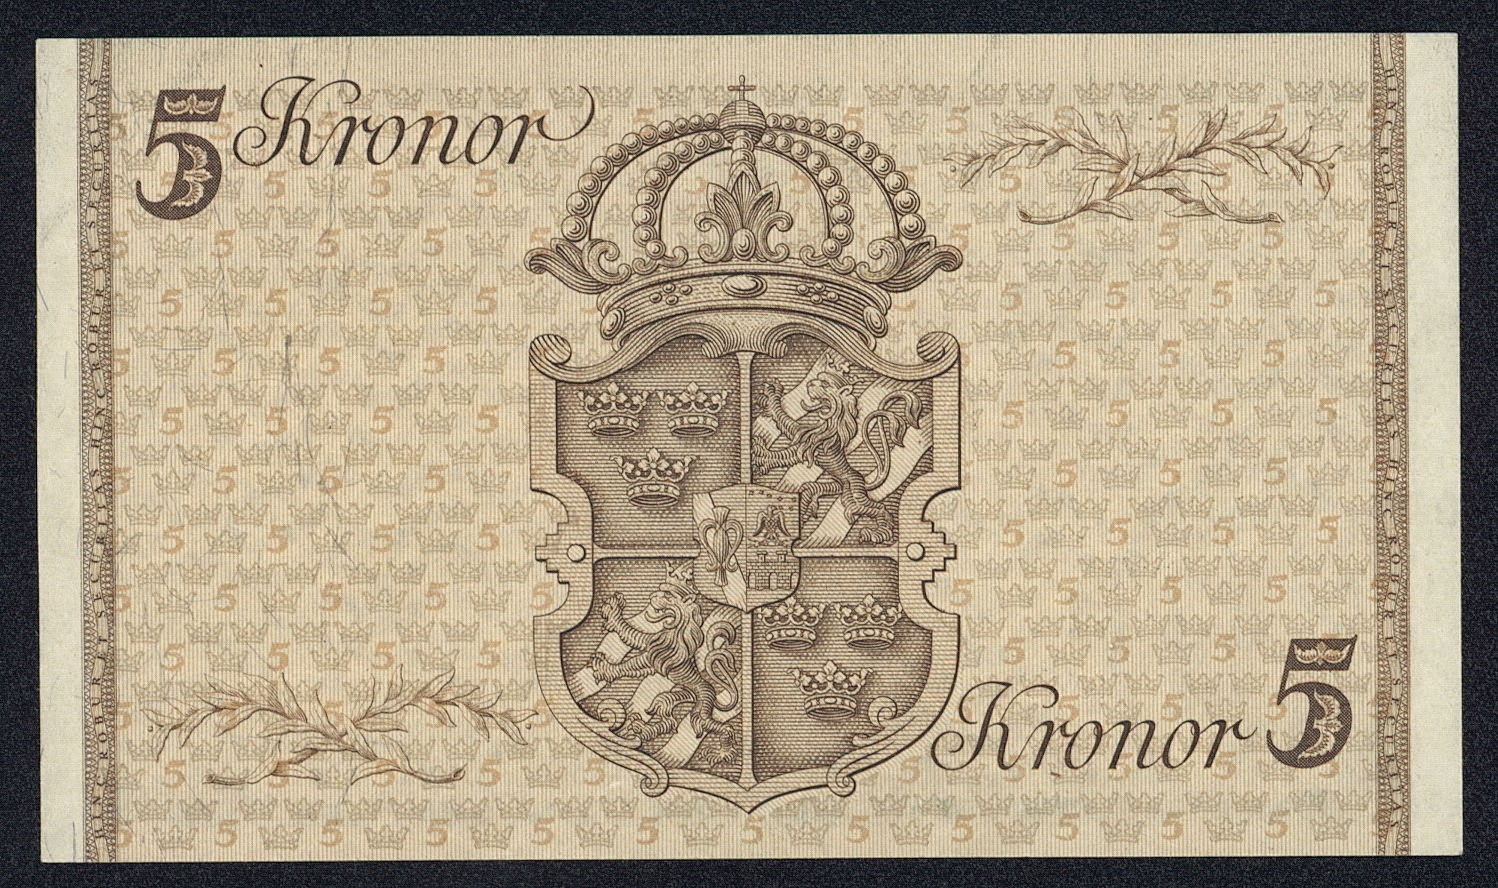 Sweden Banknotes 5 kronor jubilee banknote printed in 1948, to commemorate King Gustav V's 90th birthday on 16 July 1948